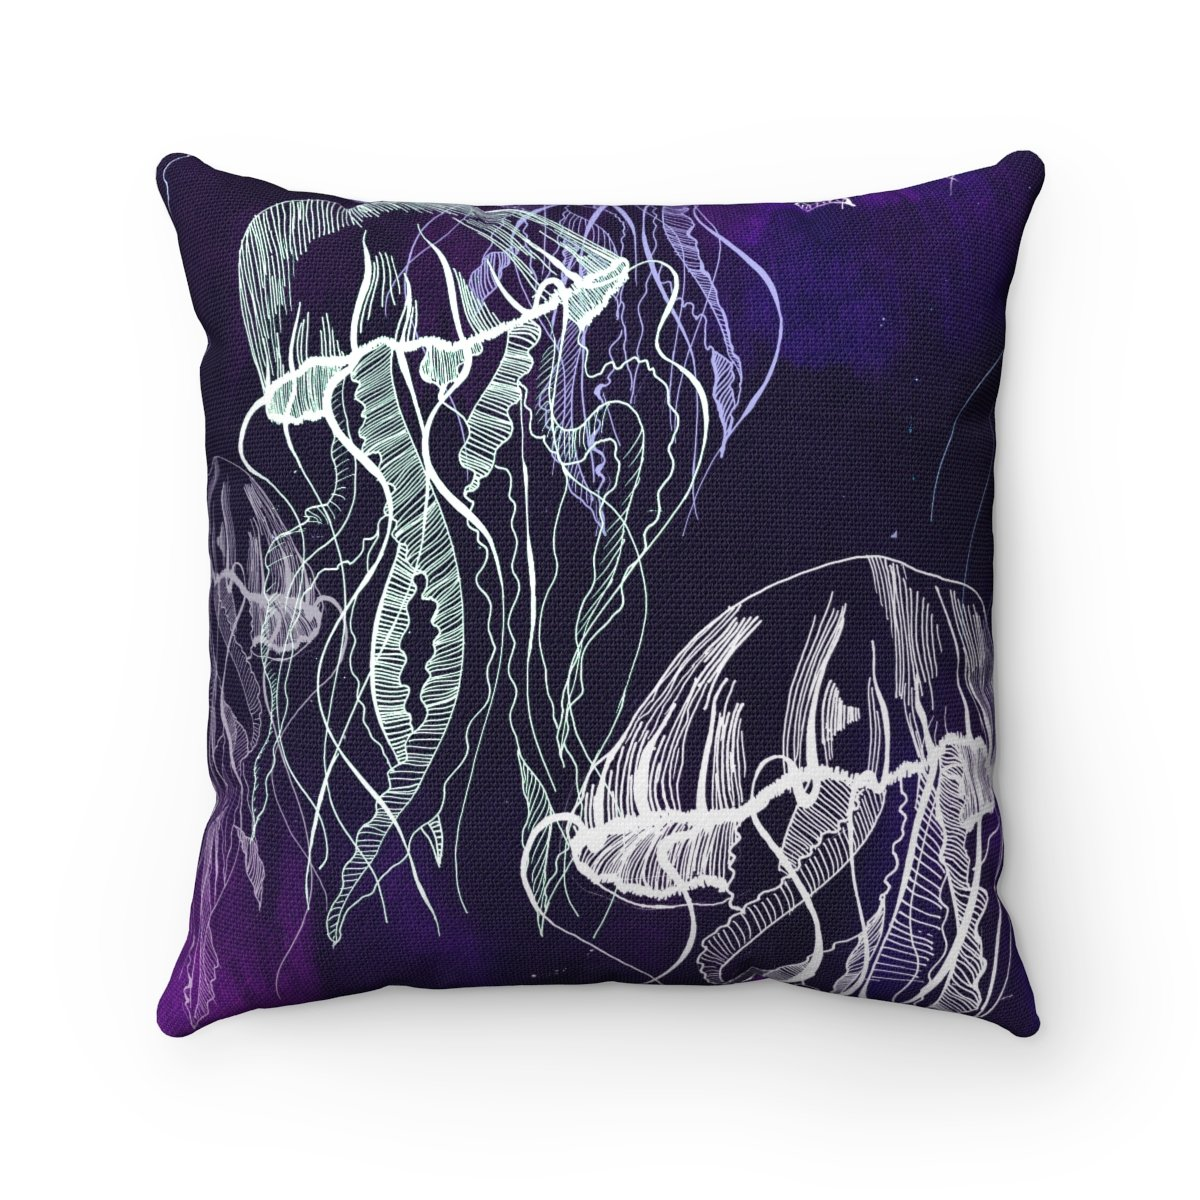 The Jelly - Spun Polyester Square Pillow